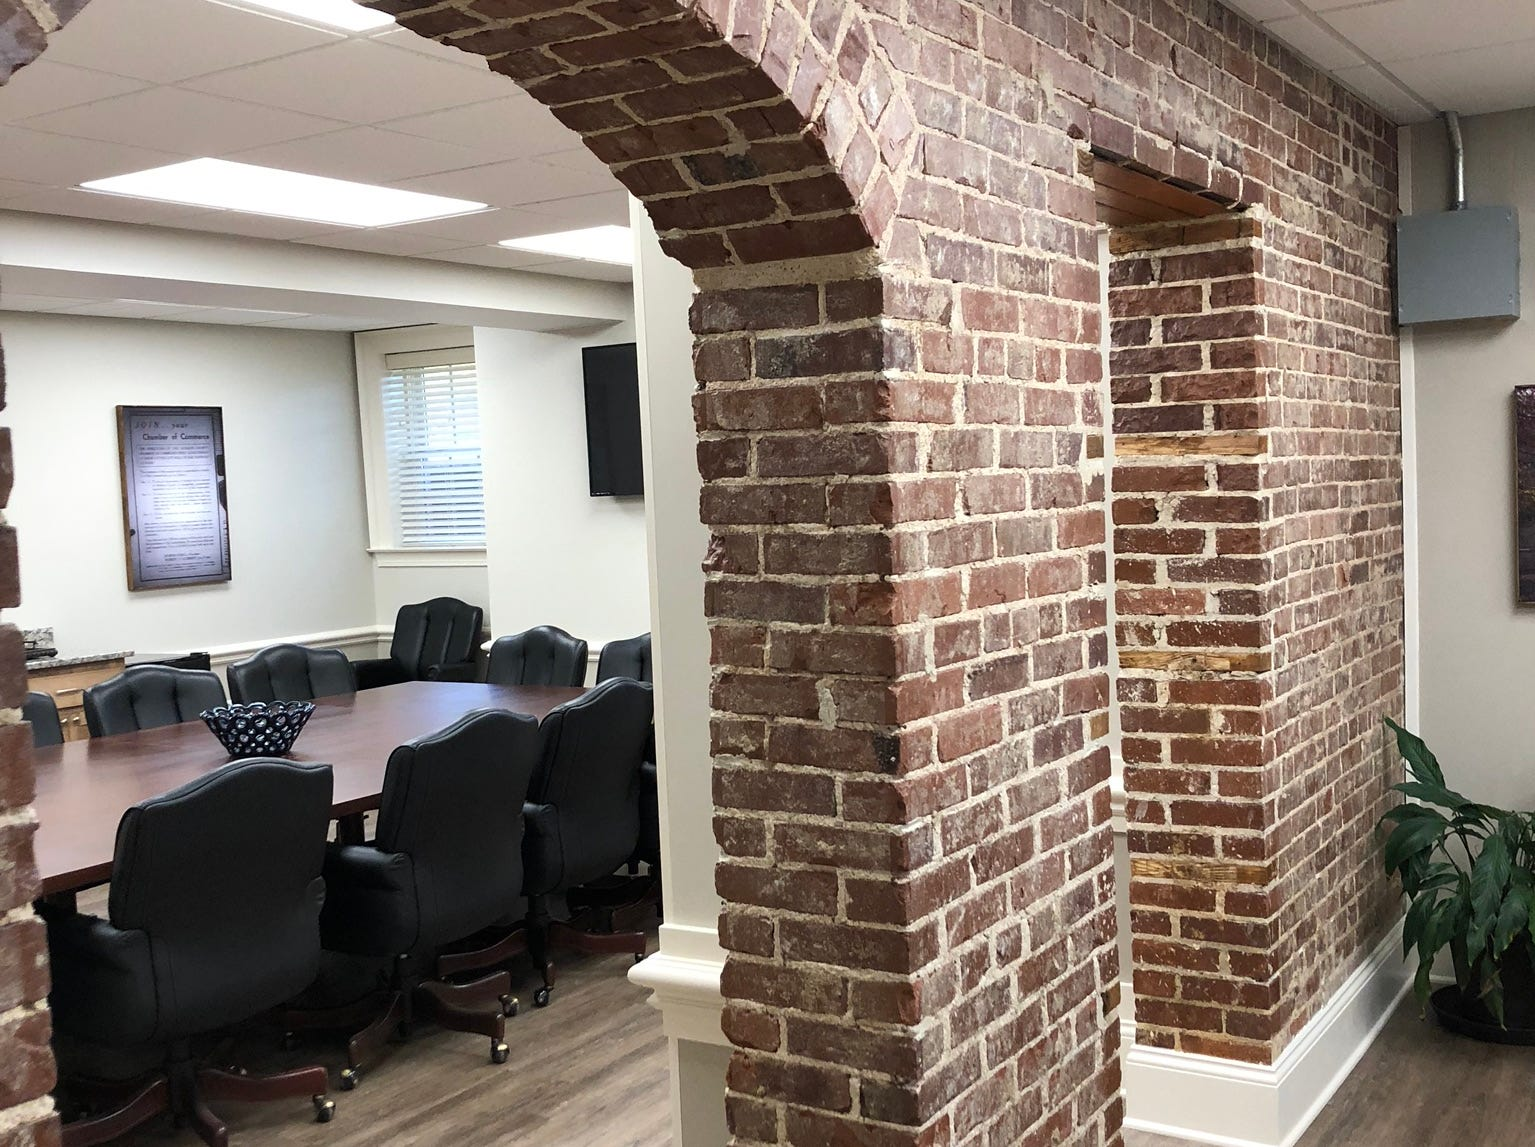 The Dickson County Chamber of Commerce staff is now located in new offices in the back, bottom floor of the War Memorial Building in Downtown Dickson. The downstairs was renovated for the move.